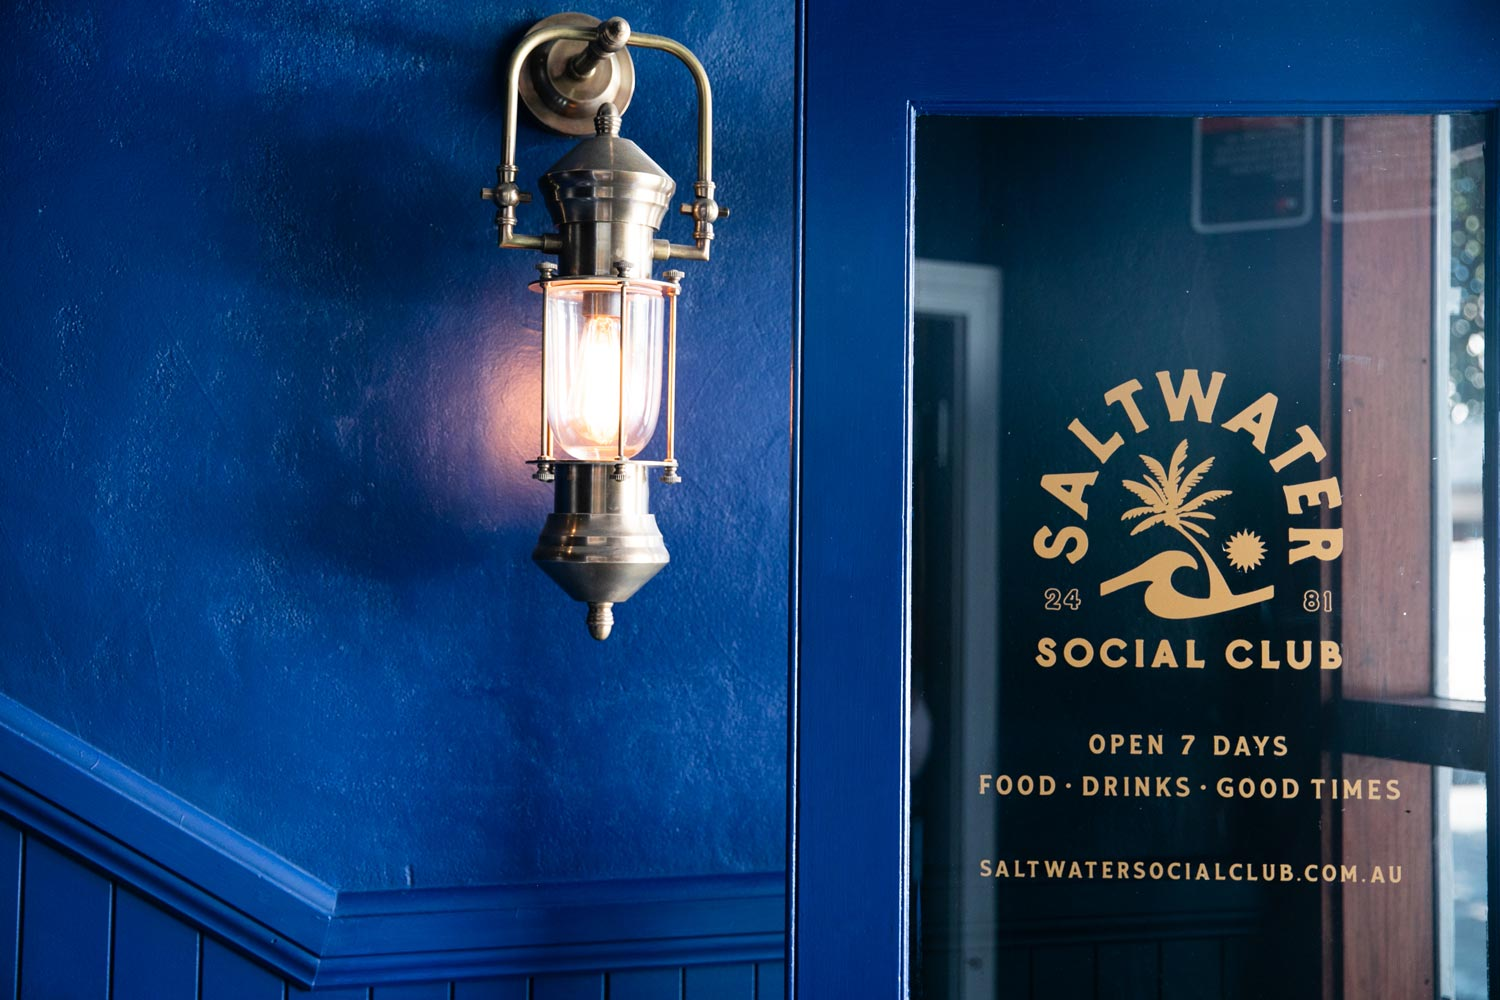 Saltwater Social Club, Exterior Snapshot (Navy door with gold decals)